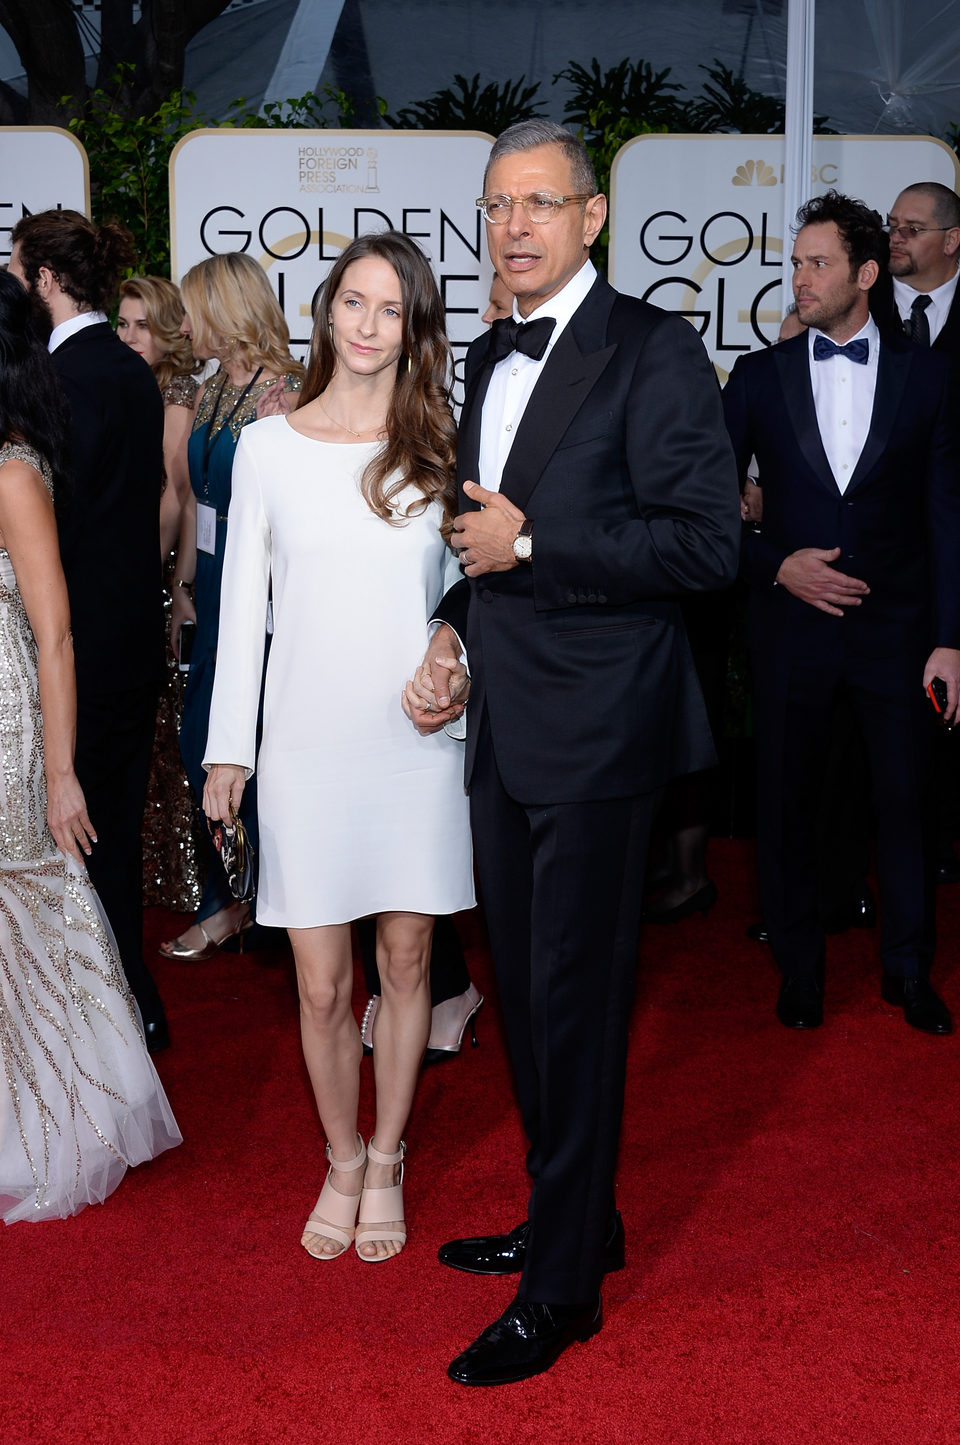 Jeff Goldblum y Emilie Livingston at the Golden Globes 2015 red carpet